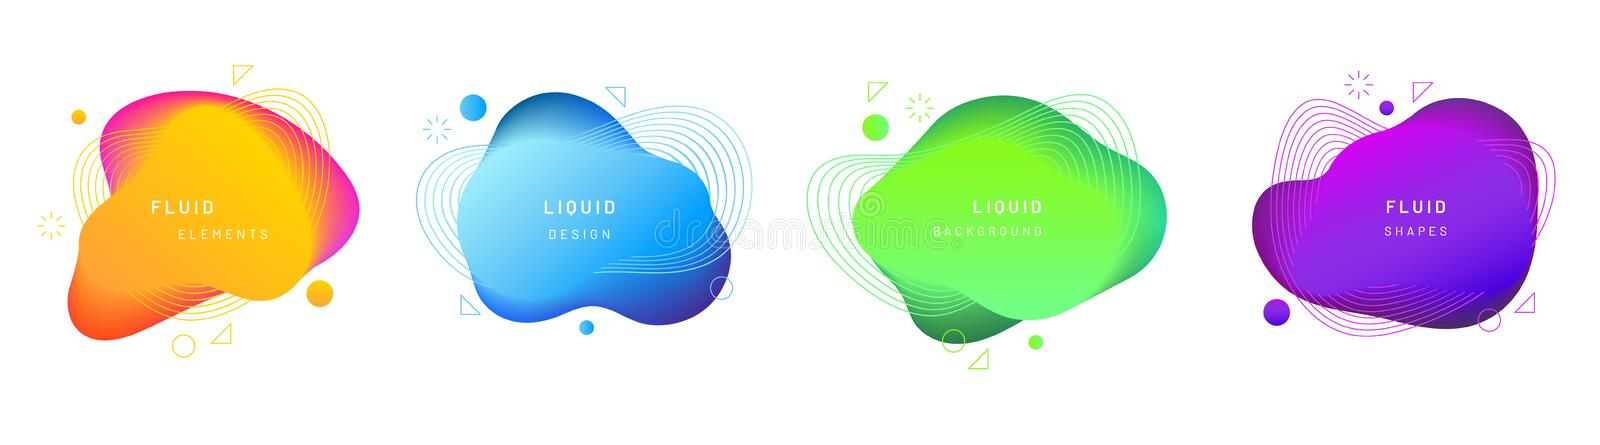 Set of isolated fluid or liquid gradient blobs. Set of isolated bright yellow, gradient blue, green and violet fluid blobs. Abstract geometric liquid stain or vector illustration